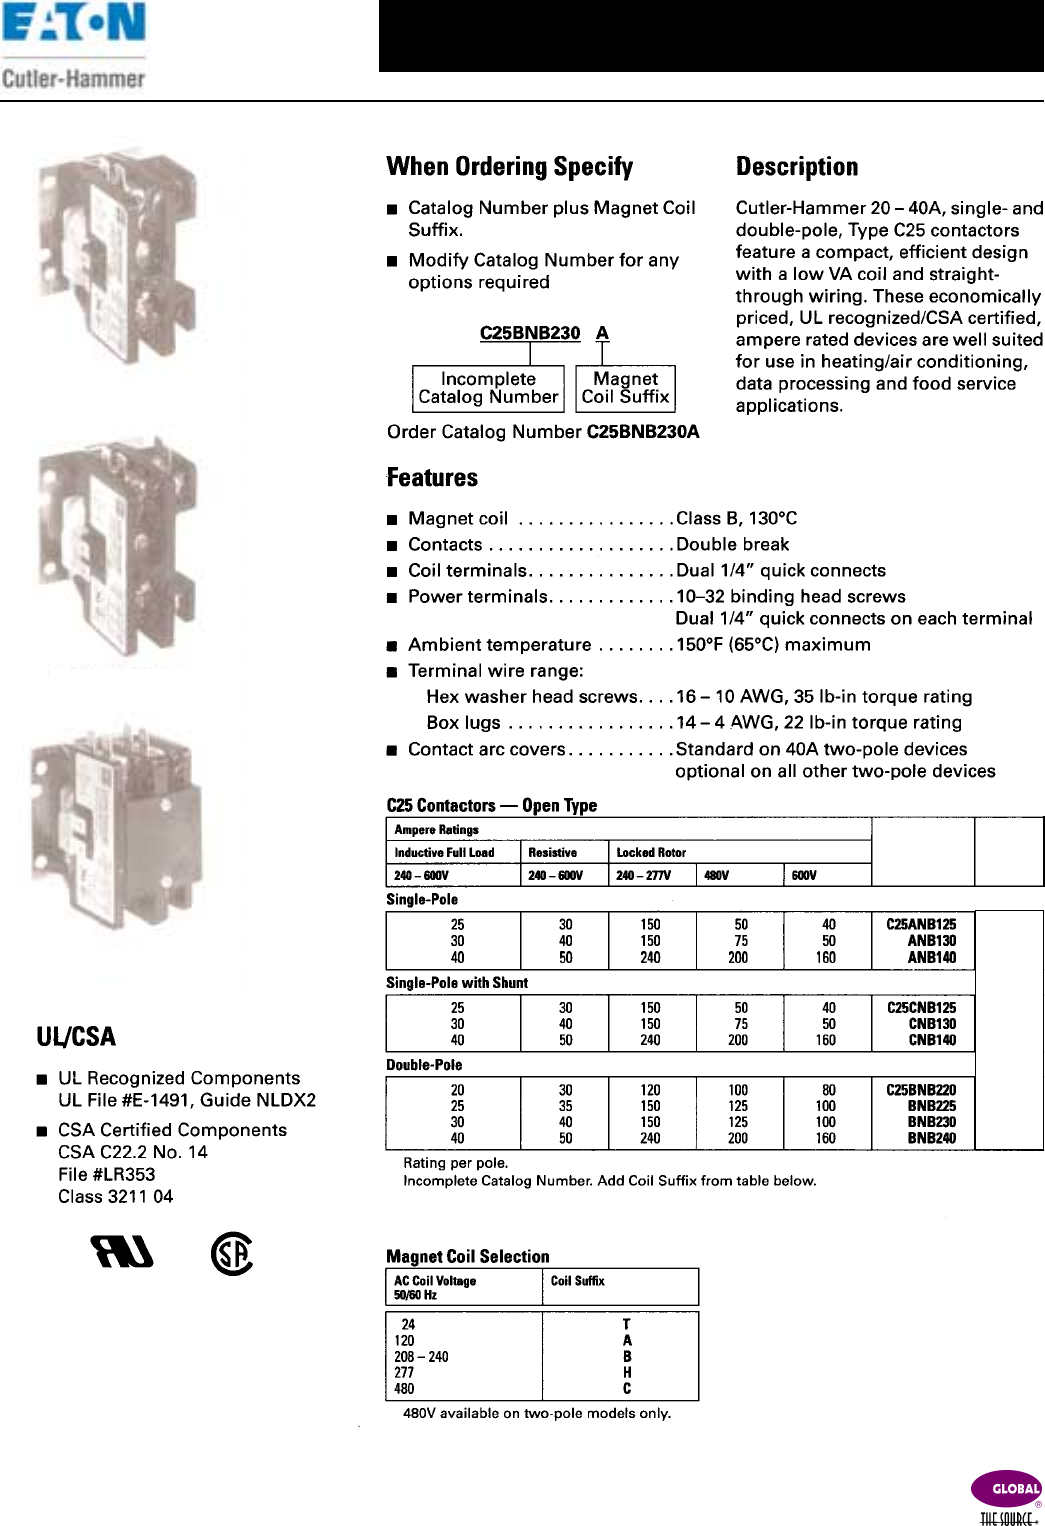 Eaton C25 Contactor Wiring Diagram Electrical Schematics Ecl03c1a9a Lighting C25bnb230a Download C25dnx230a